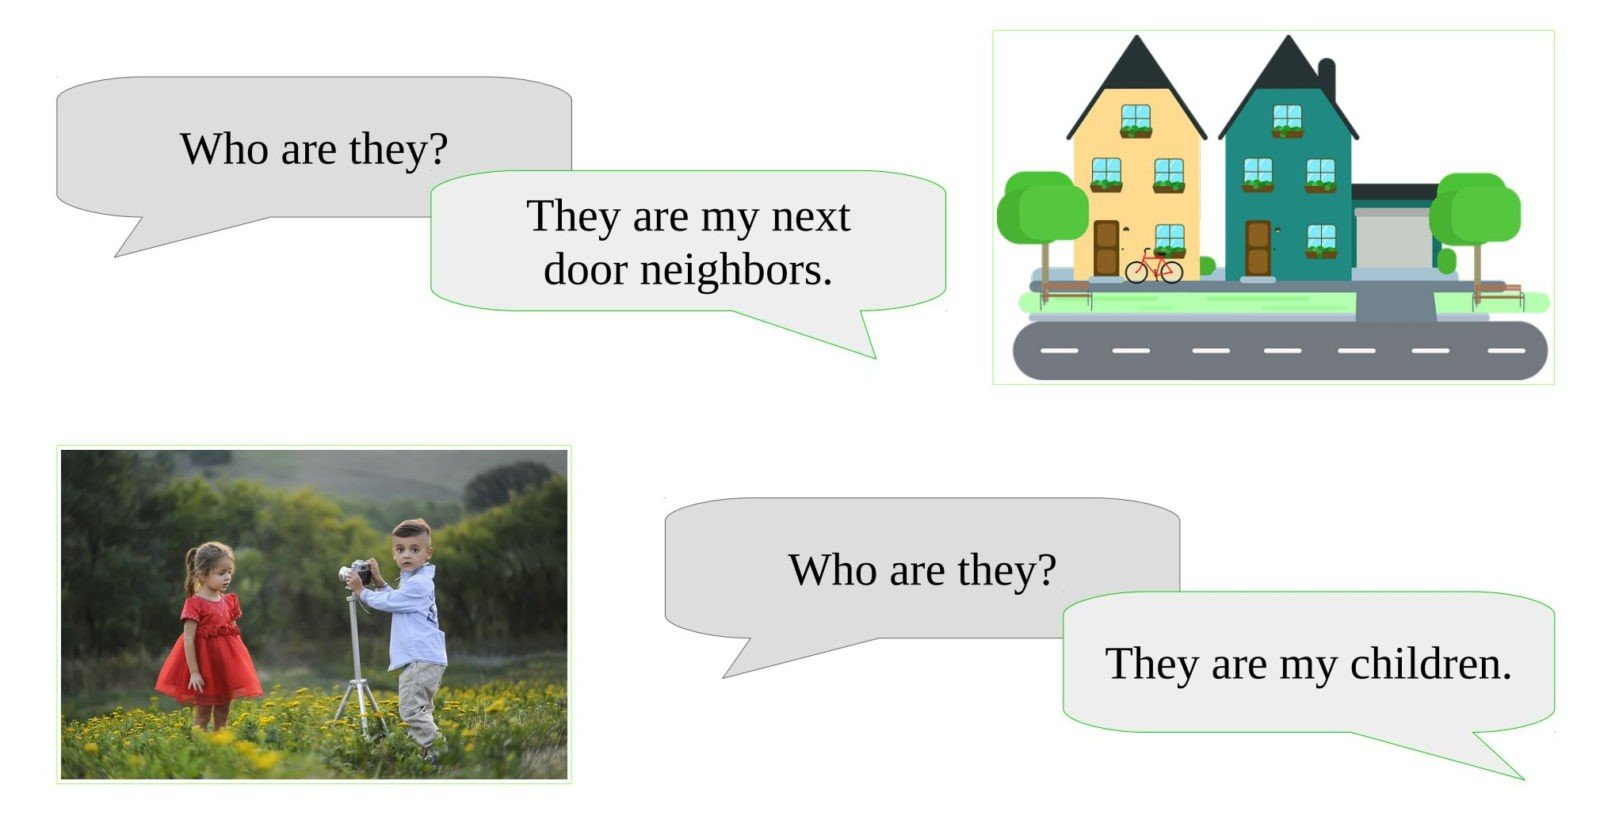 Dialog practice. Speaking about others.